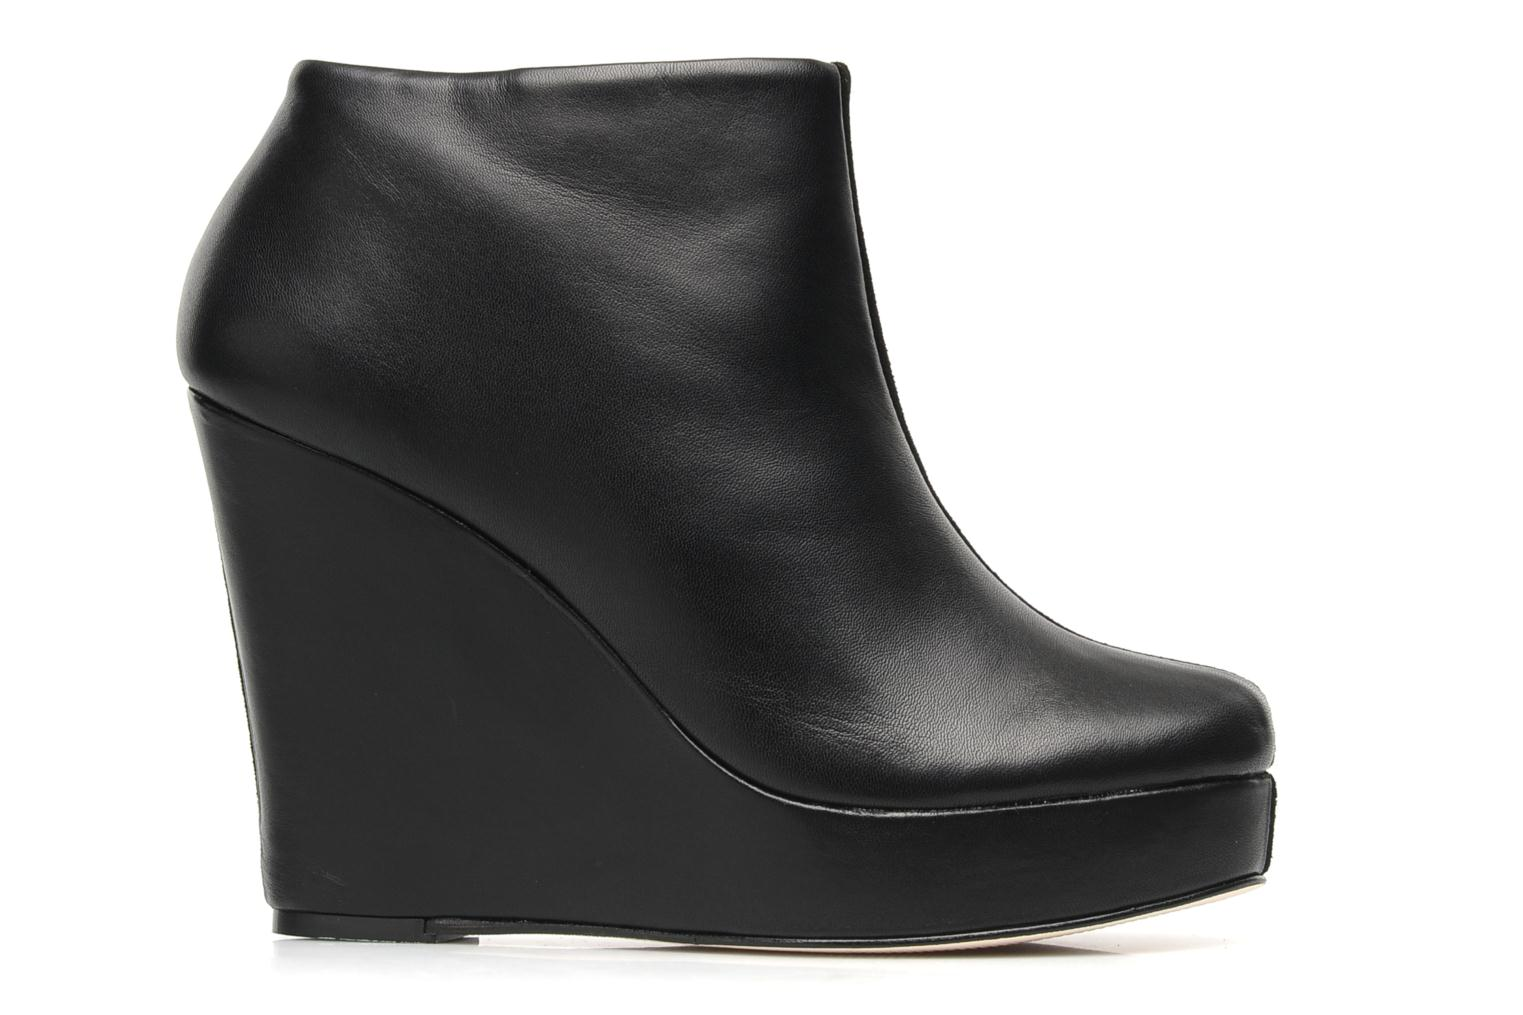 RUBY Black leather/suede